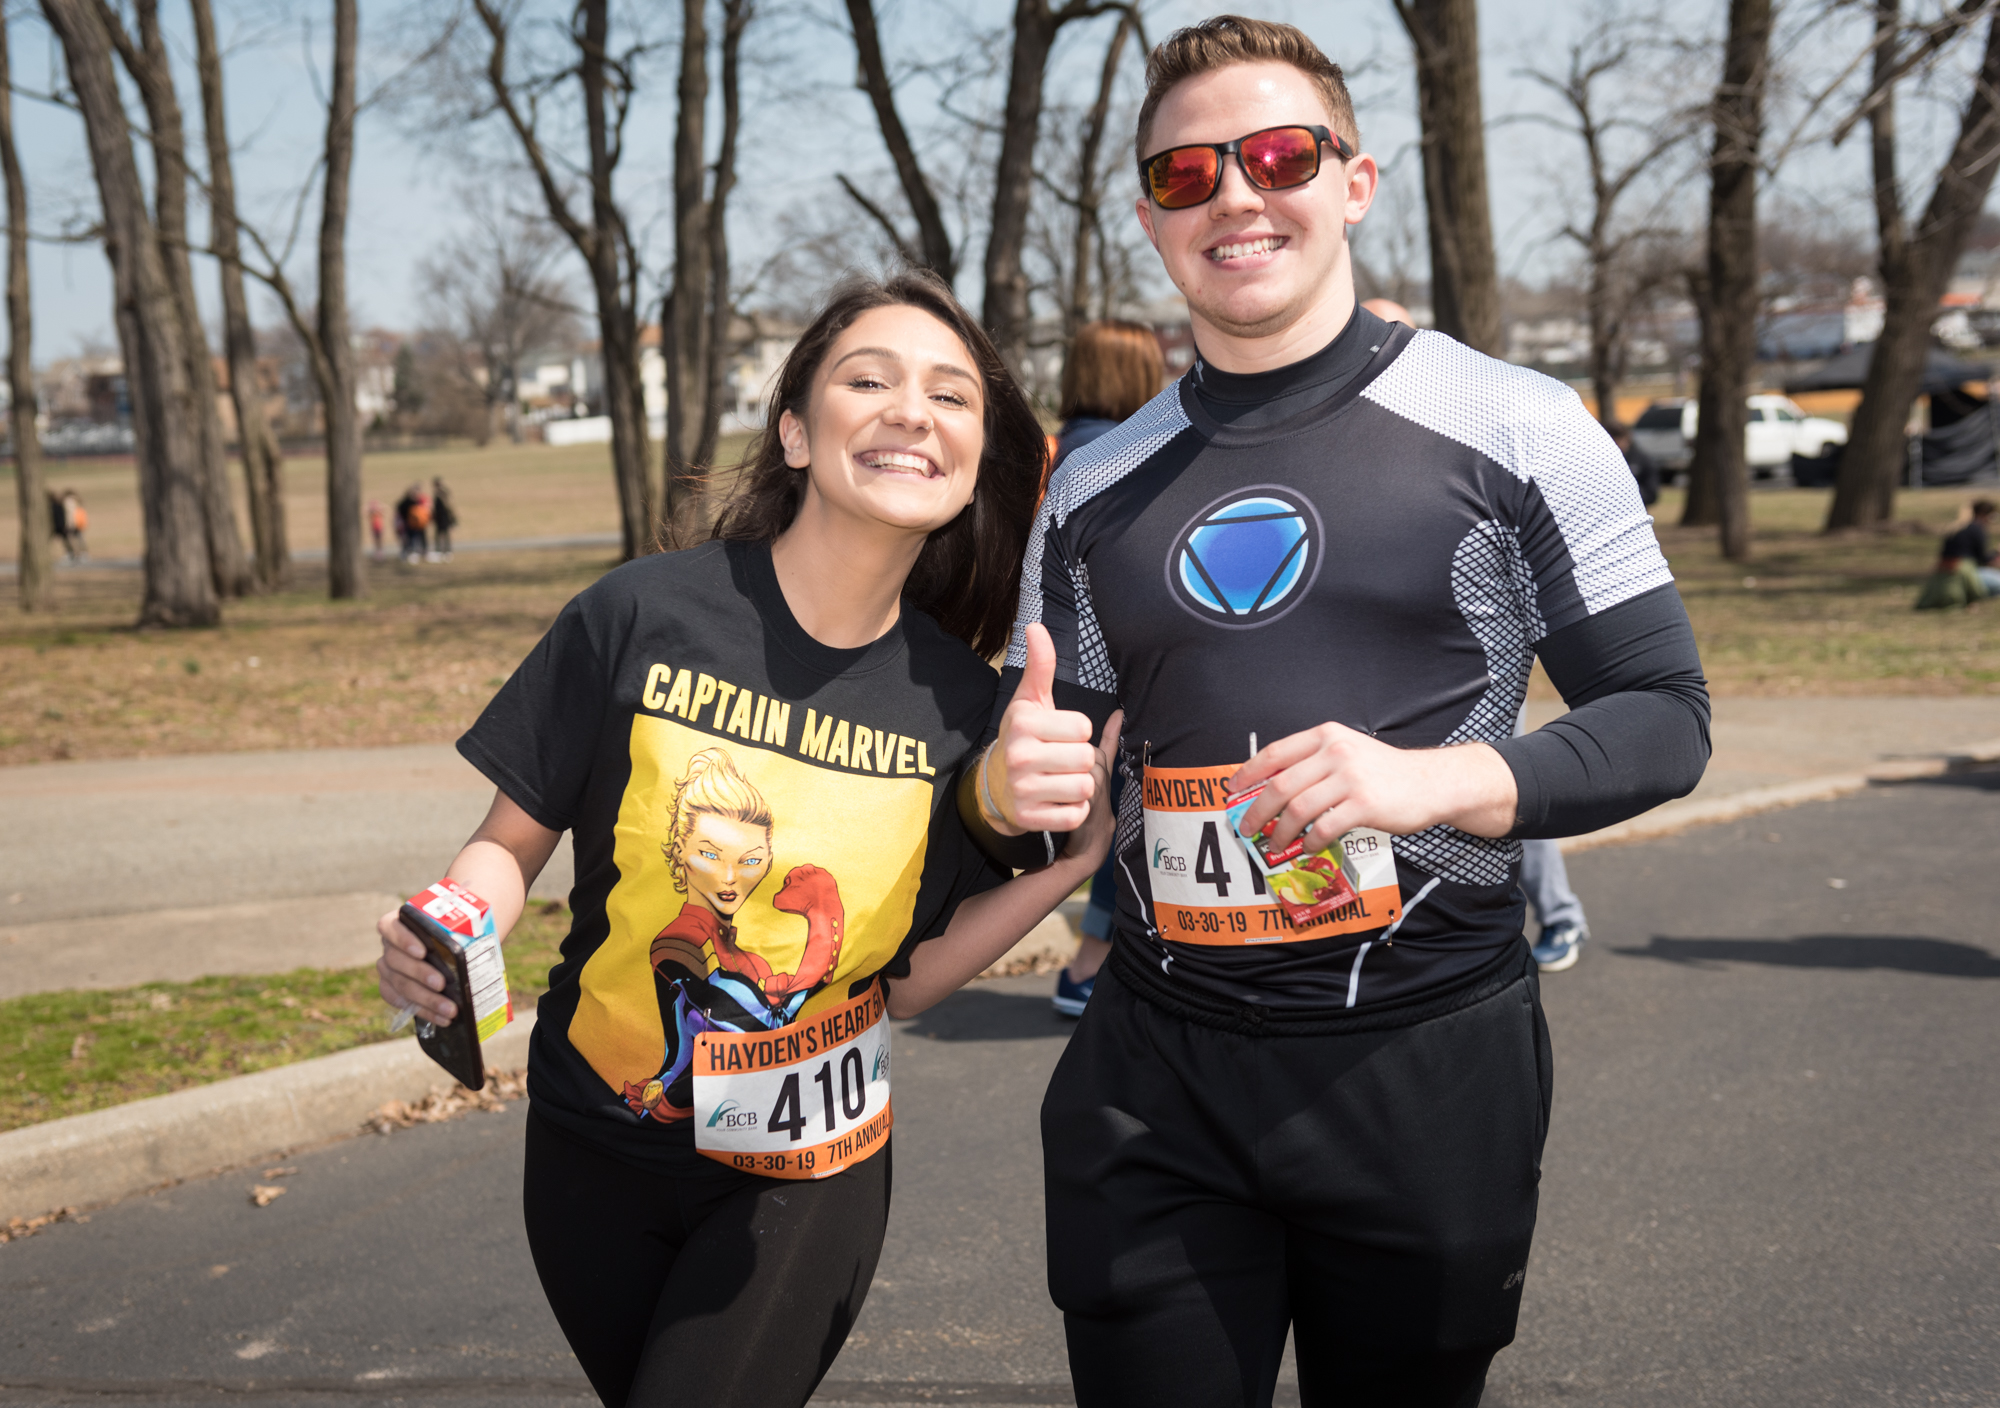 2019-03-30 Haydens Heart 5k - Riverside County Park - North Arlington NJ-134.jpg